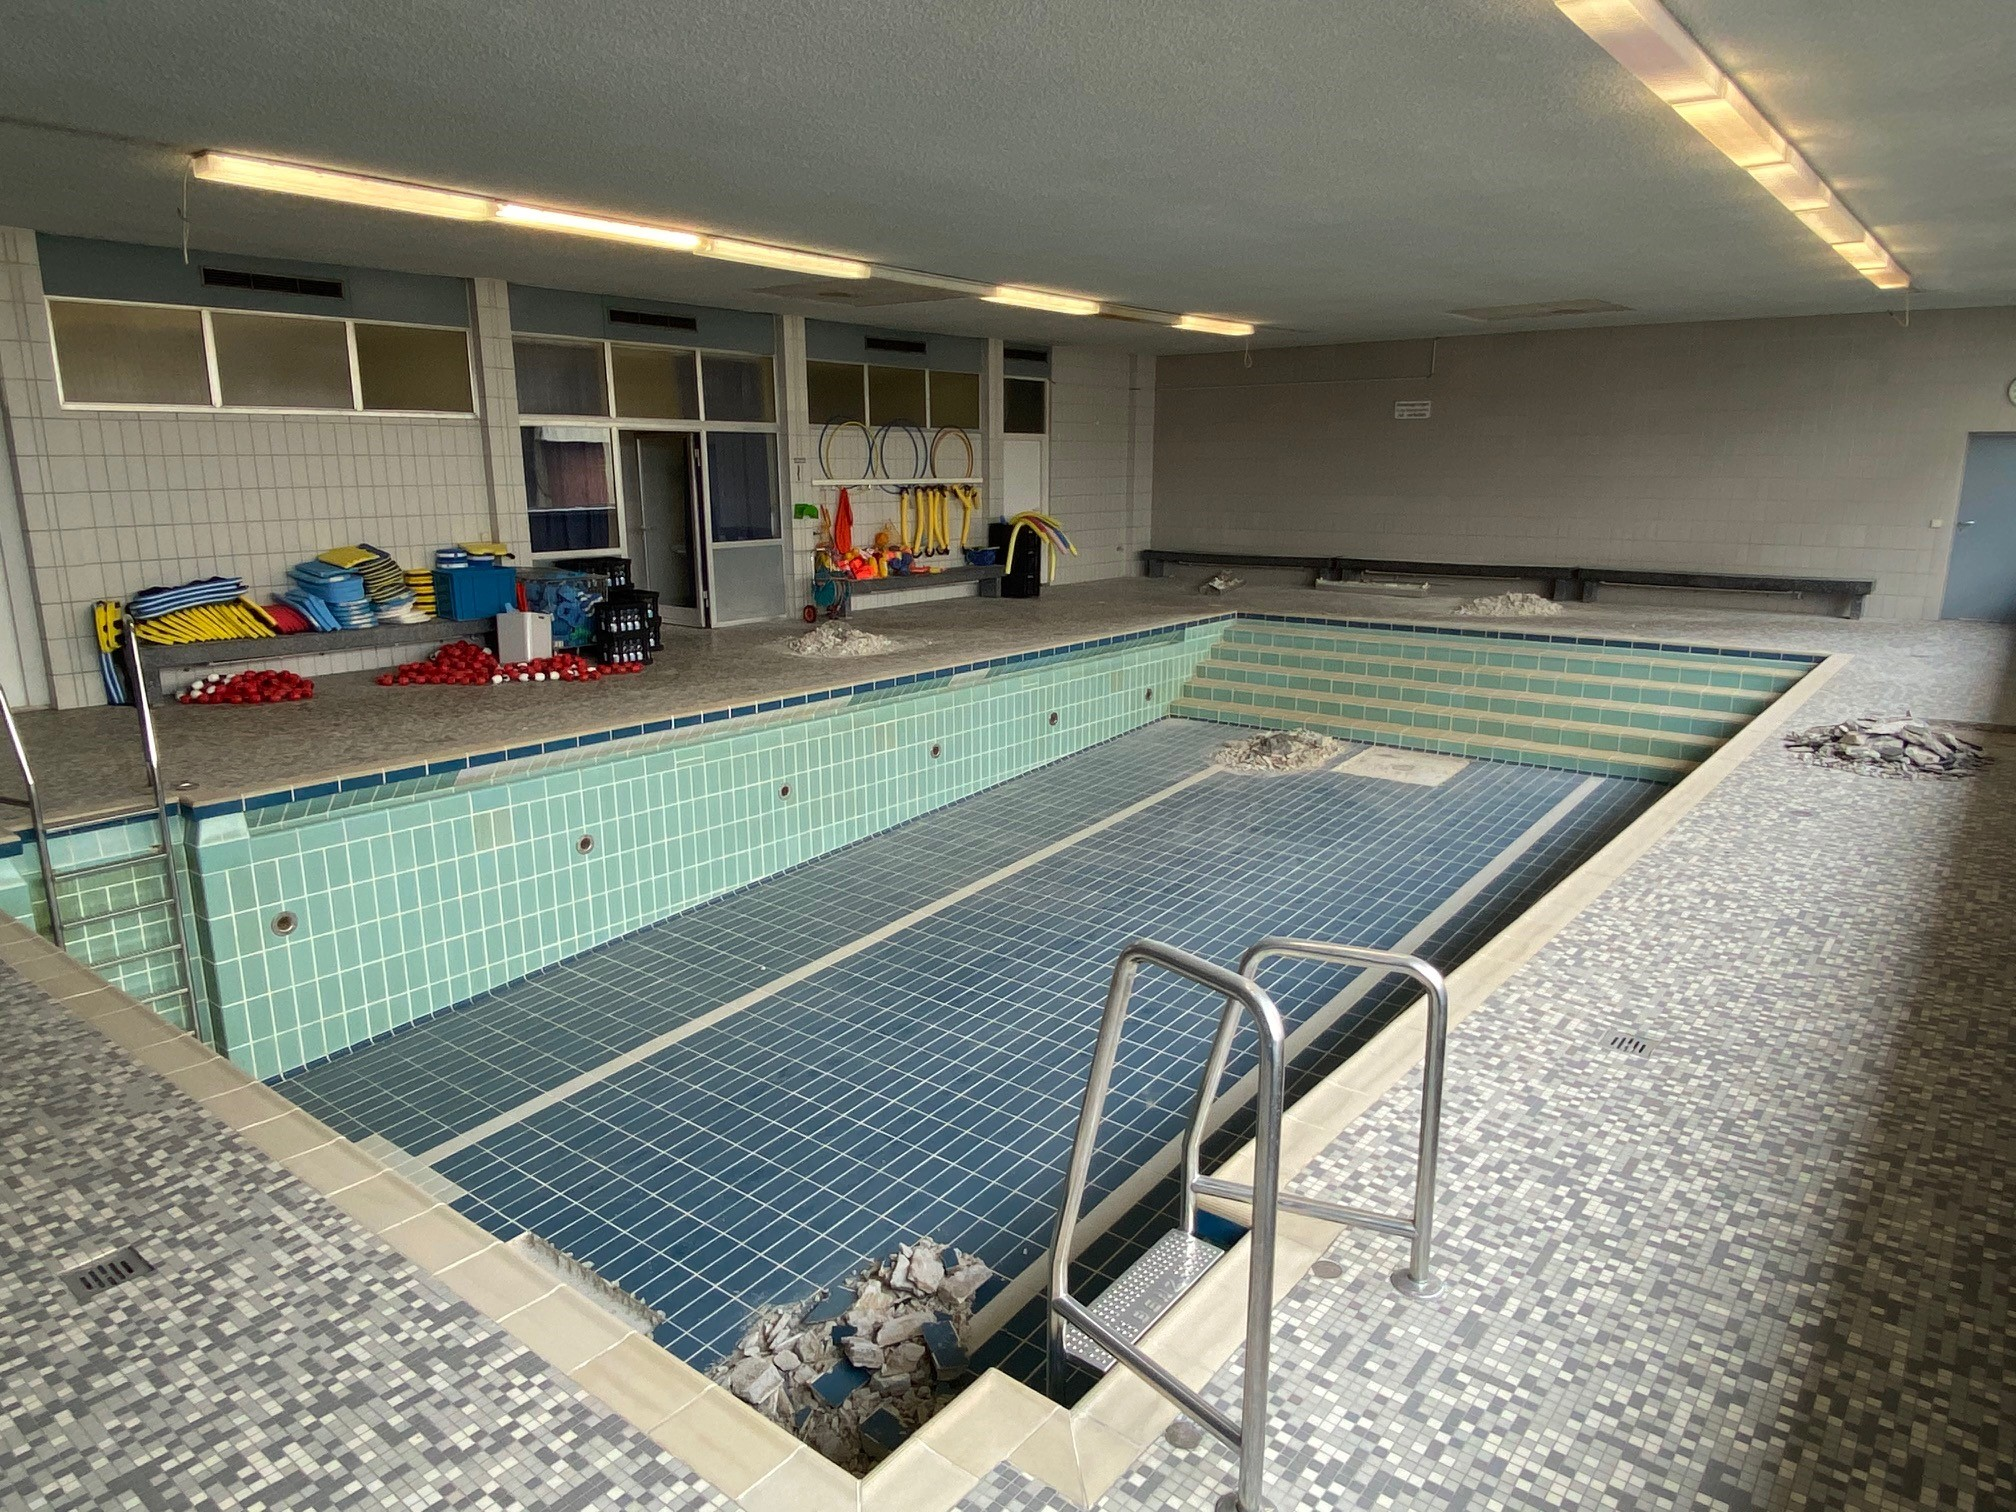 Lehrschwimmbad an der Ludwig-Uhland-Schule